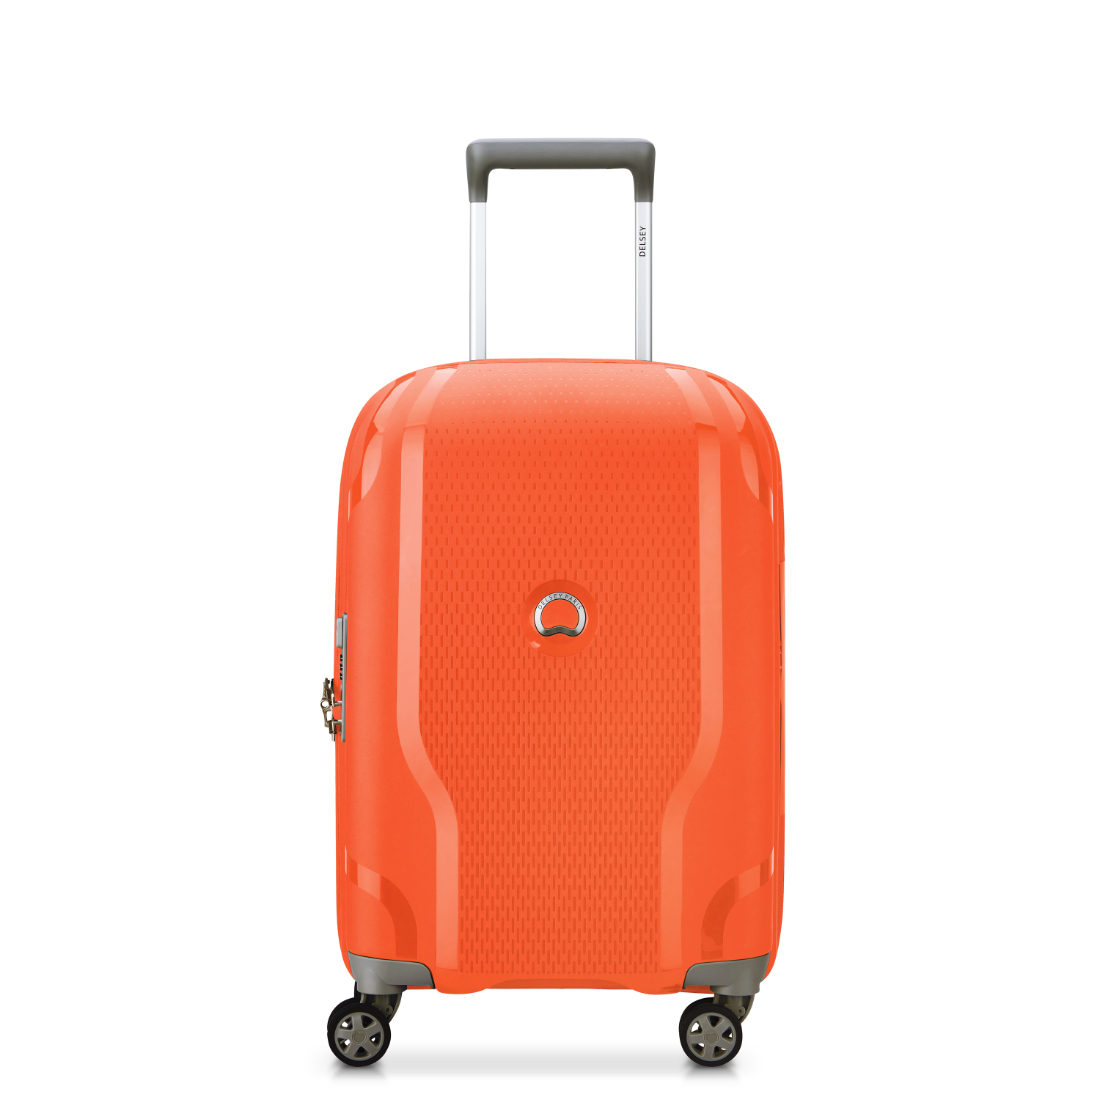 DELSEY luggage CLAVEL collection in orange